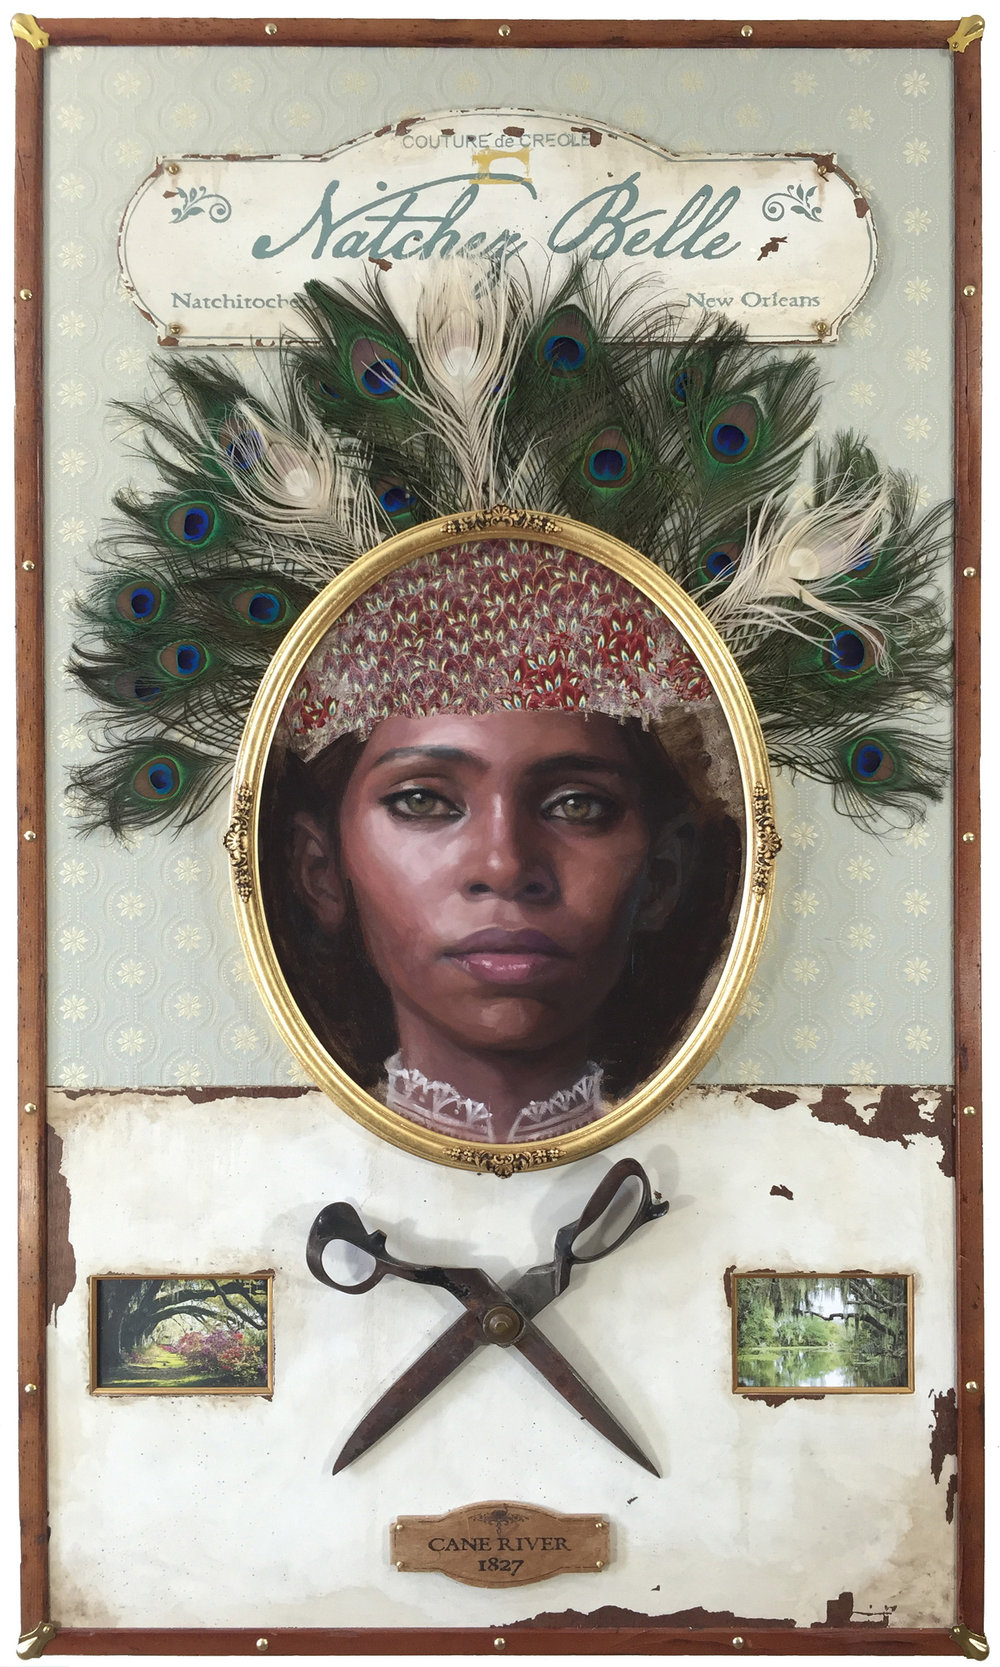 Jules Arthur  |  Natchez Belle  |  Portrait painted in oil on wood panel. Constructed wooden box frame, fabric, peacock feathers, 23k gold leaf lettering and oval frame, brass hardware, vintage bespoke tailor shears  |  31 x 53 x 4 inches or 78 ¾ x 134 ½ x 10 cm